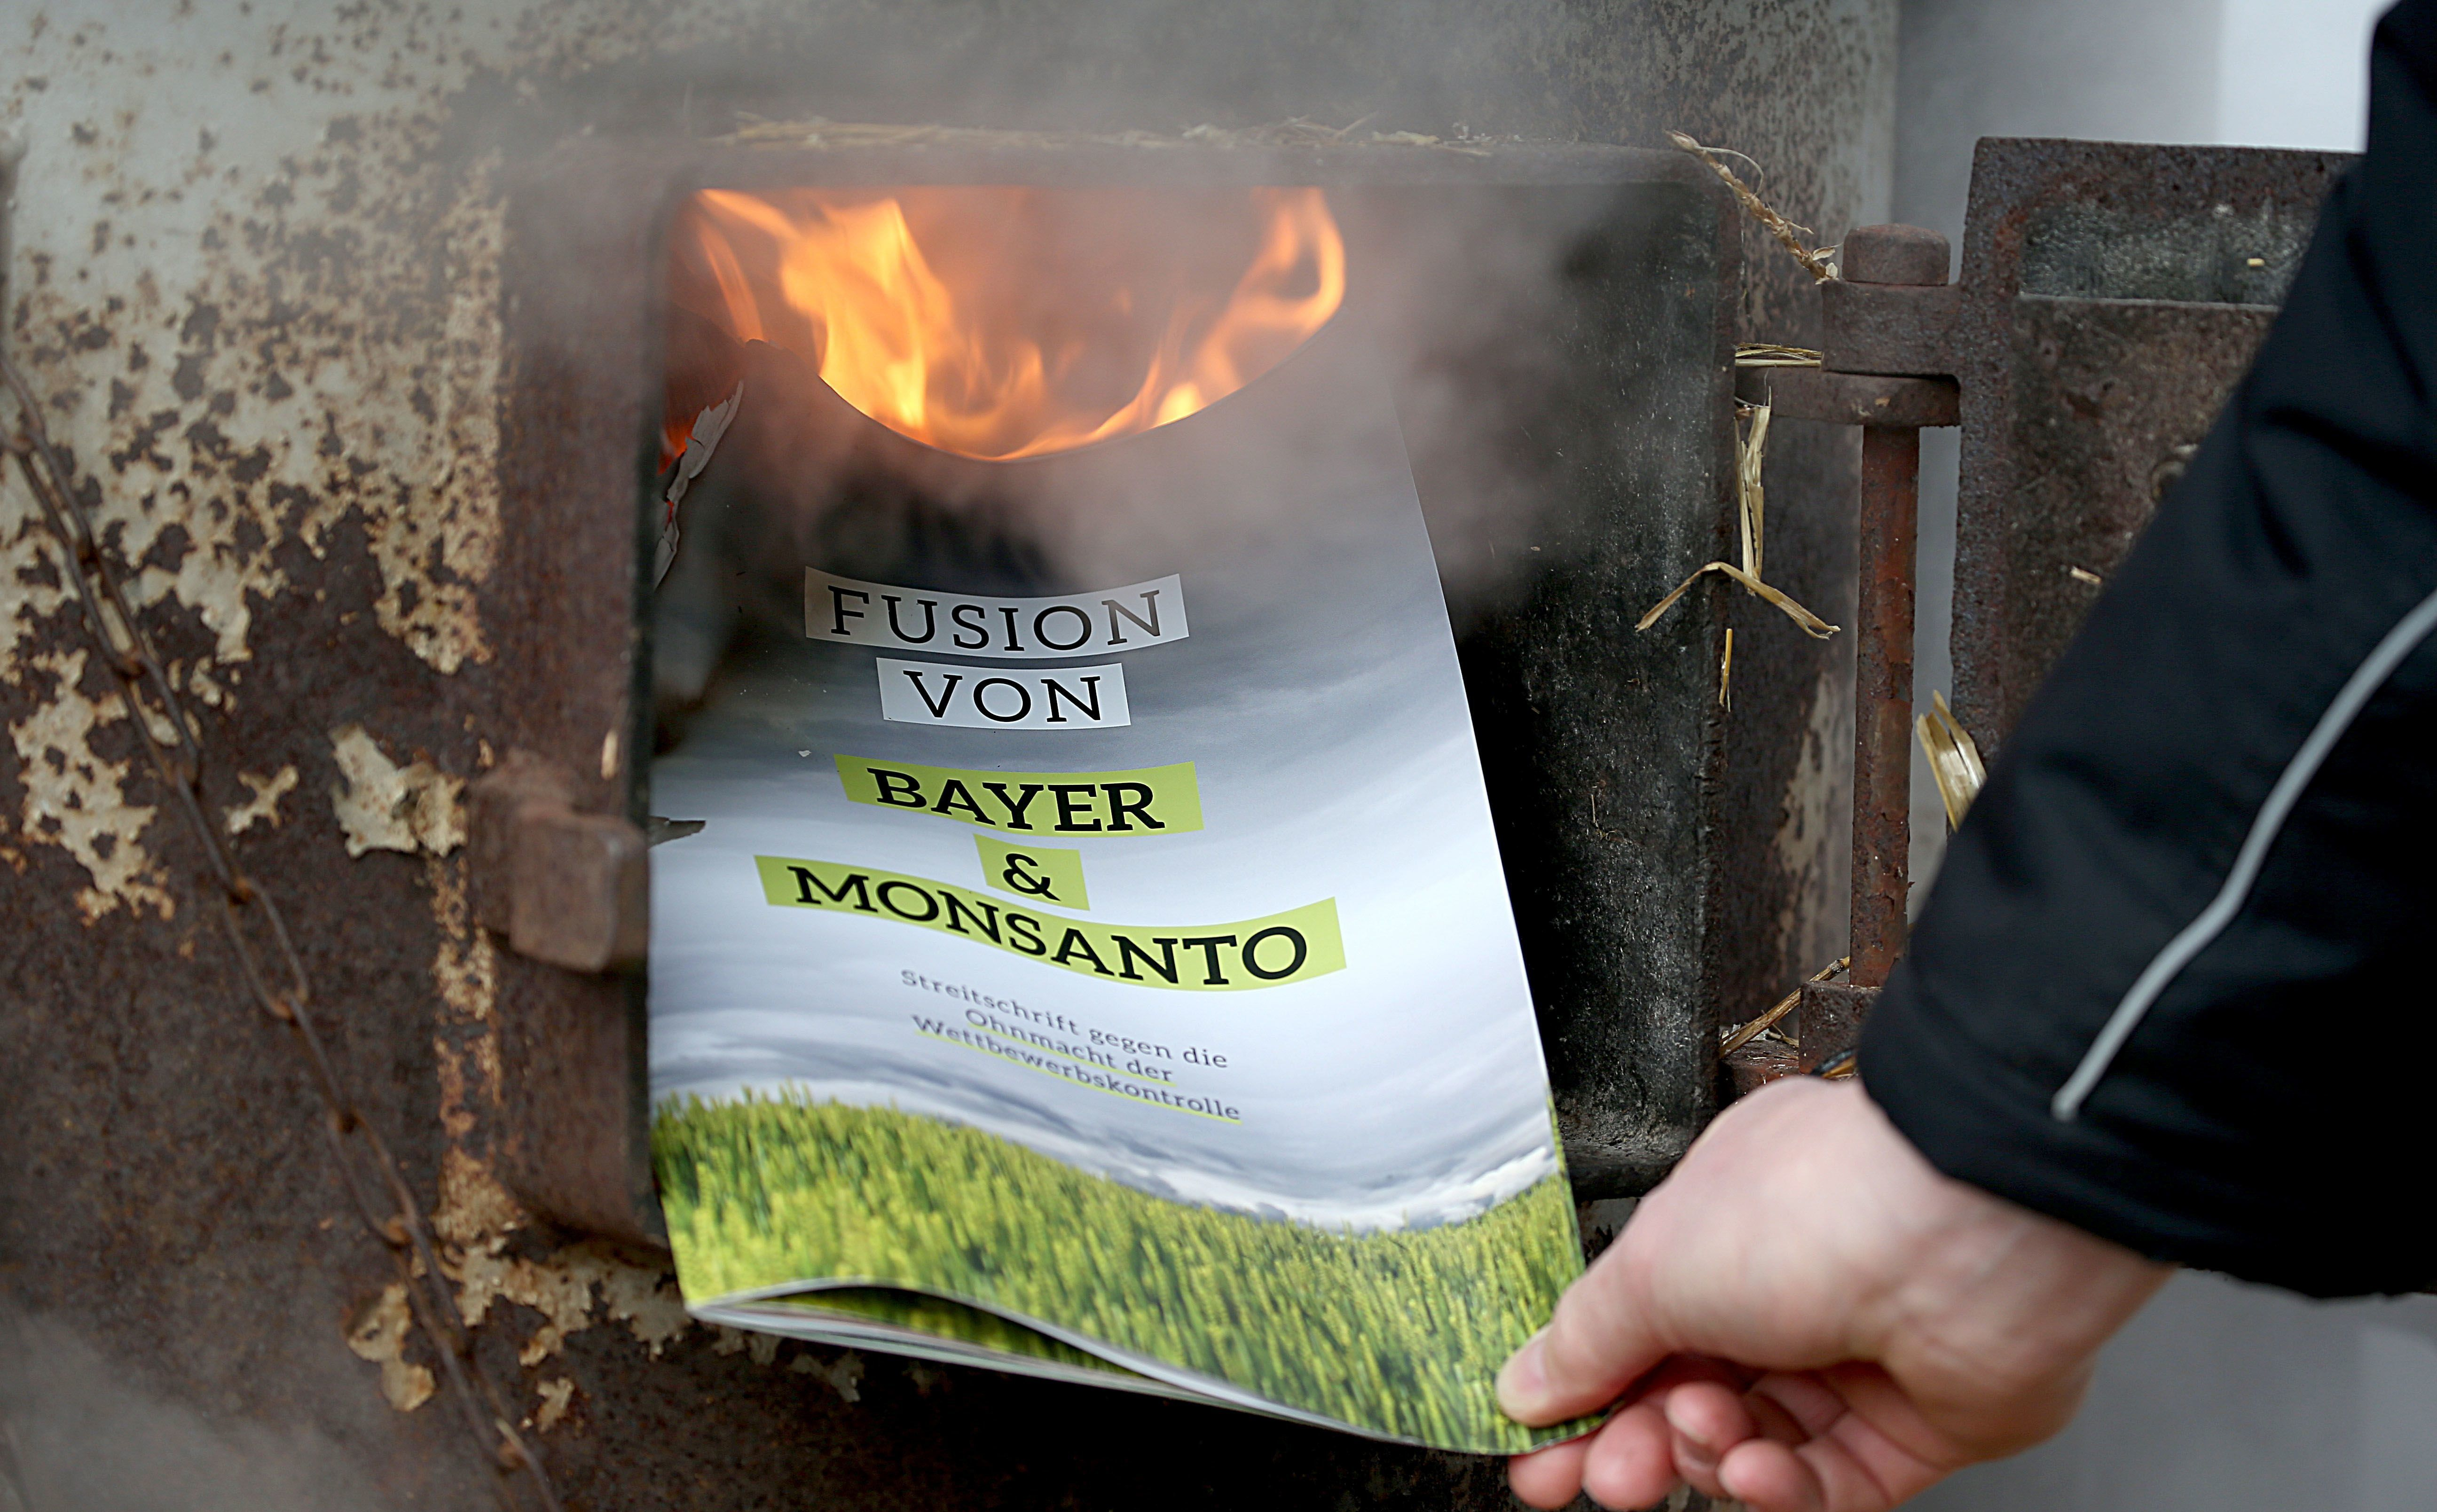 A protestor burns a leaflet during a demonstration in Bonn, Germany, against the merger between seed company Monsanto and pha